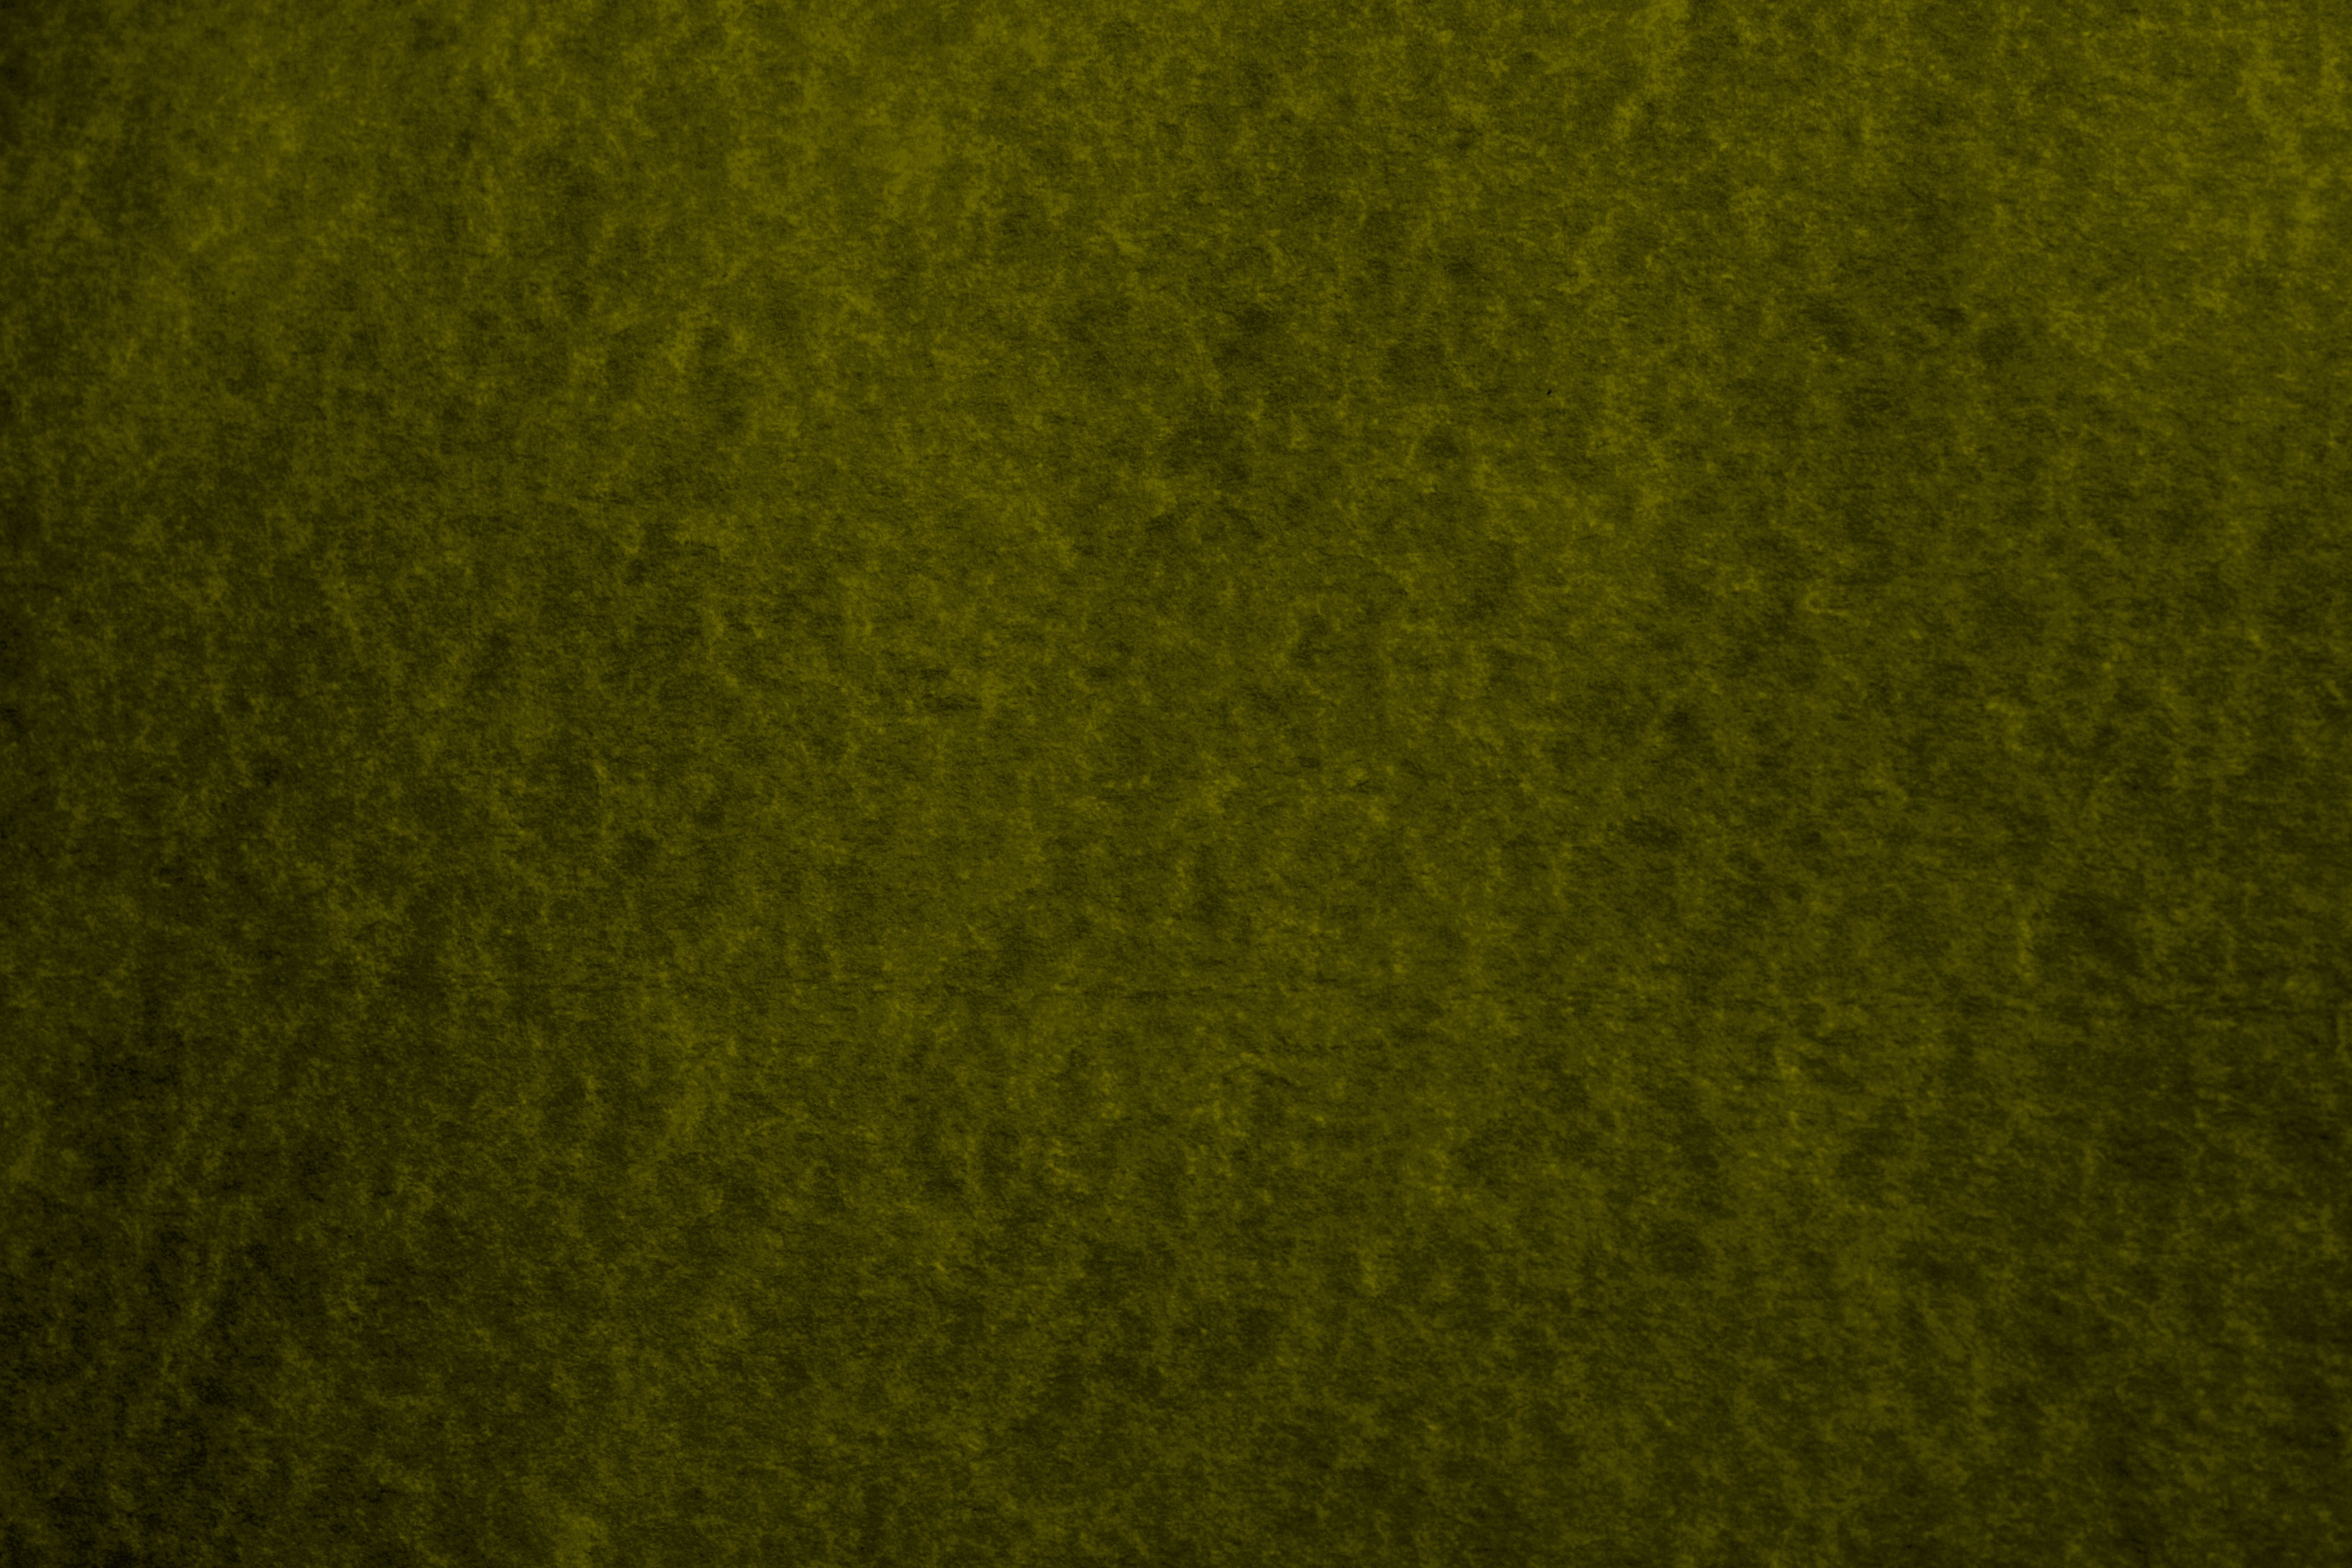 Olive Green Parchment Paper Texture Picture Free